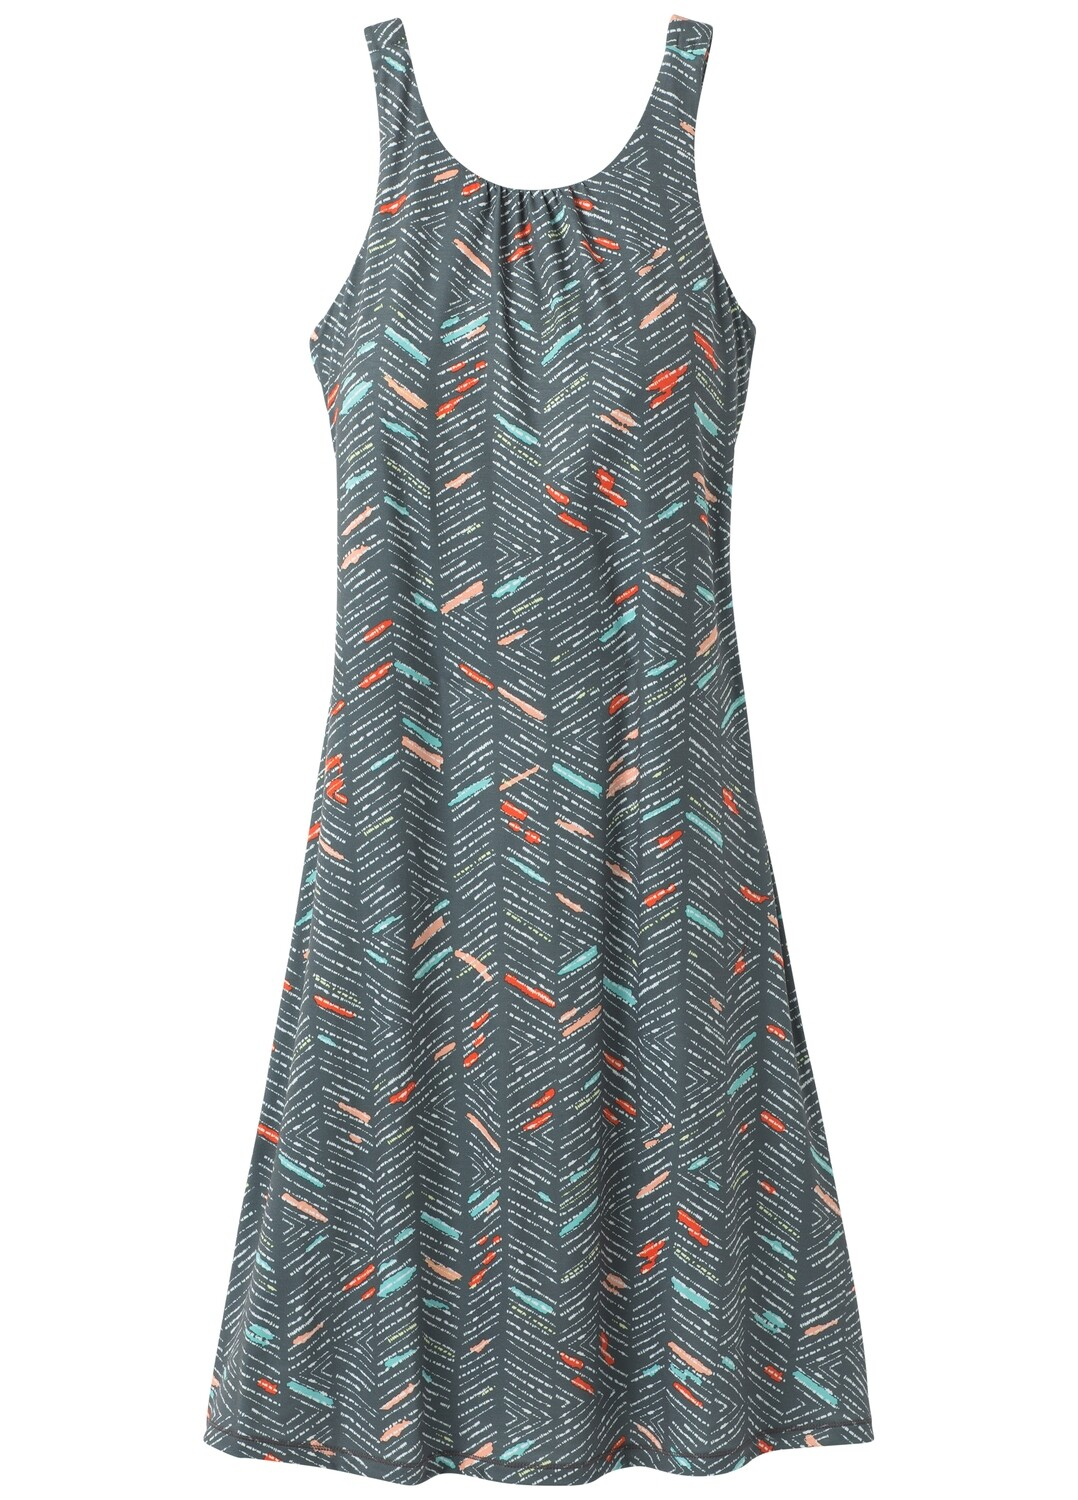 PRANA Skypath Dress